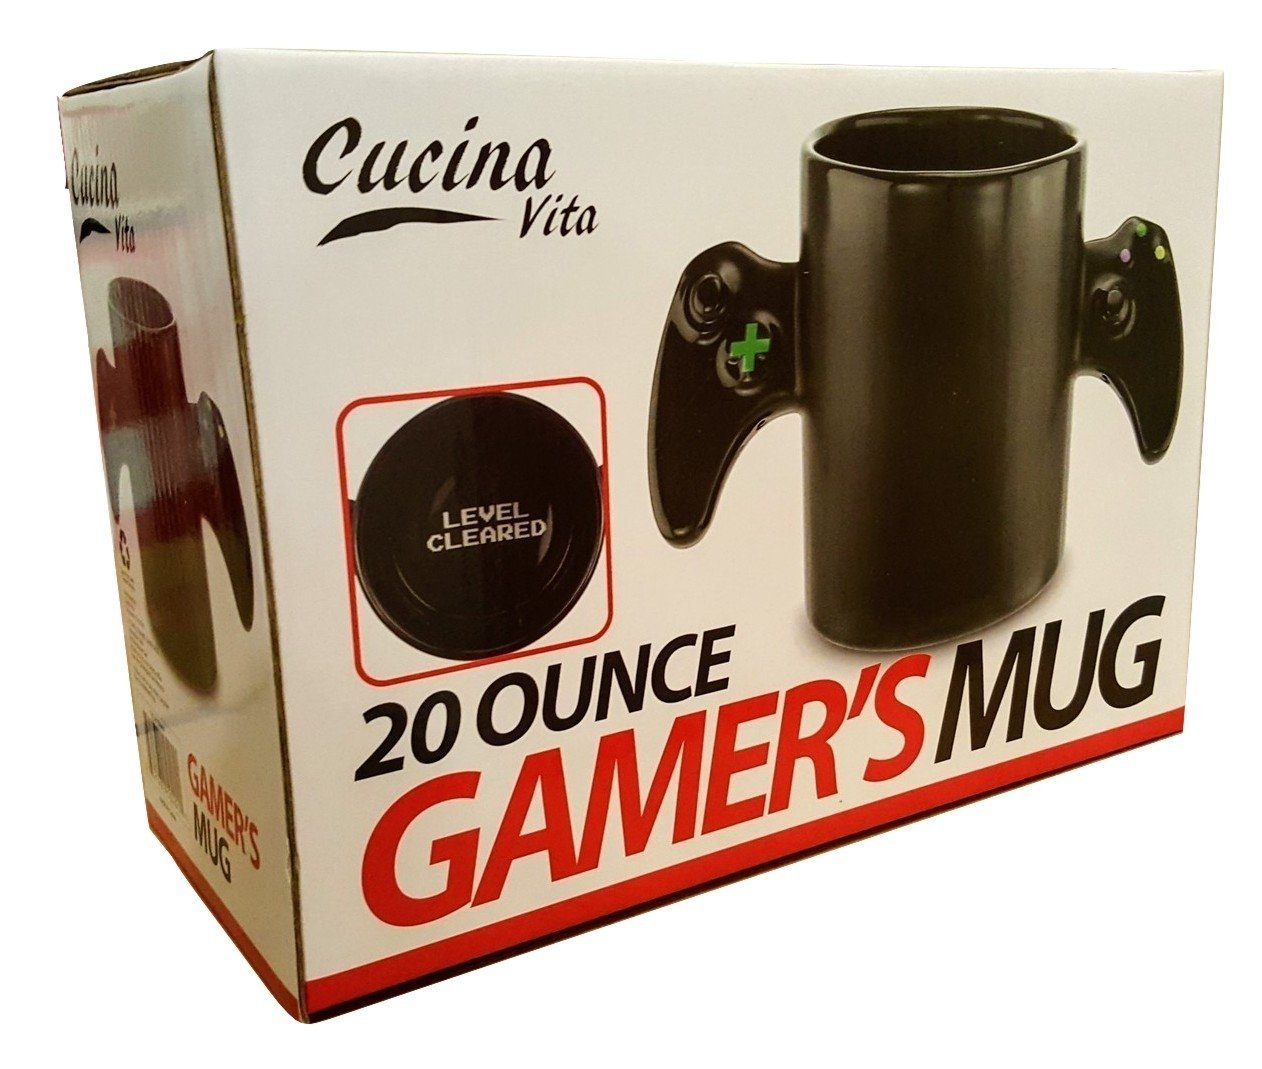 Cucina Vita Mug Cucina Vita 20 Ounce Gamer S Mug Reveal A Level Cleared Message Once You Finish Your Drink Perfect For Any Gamer